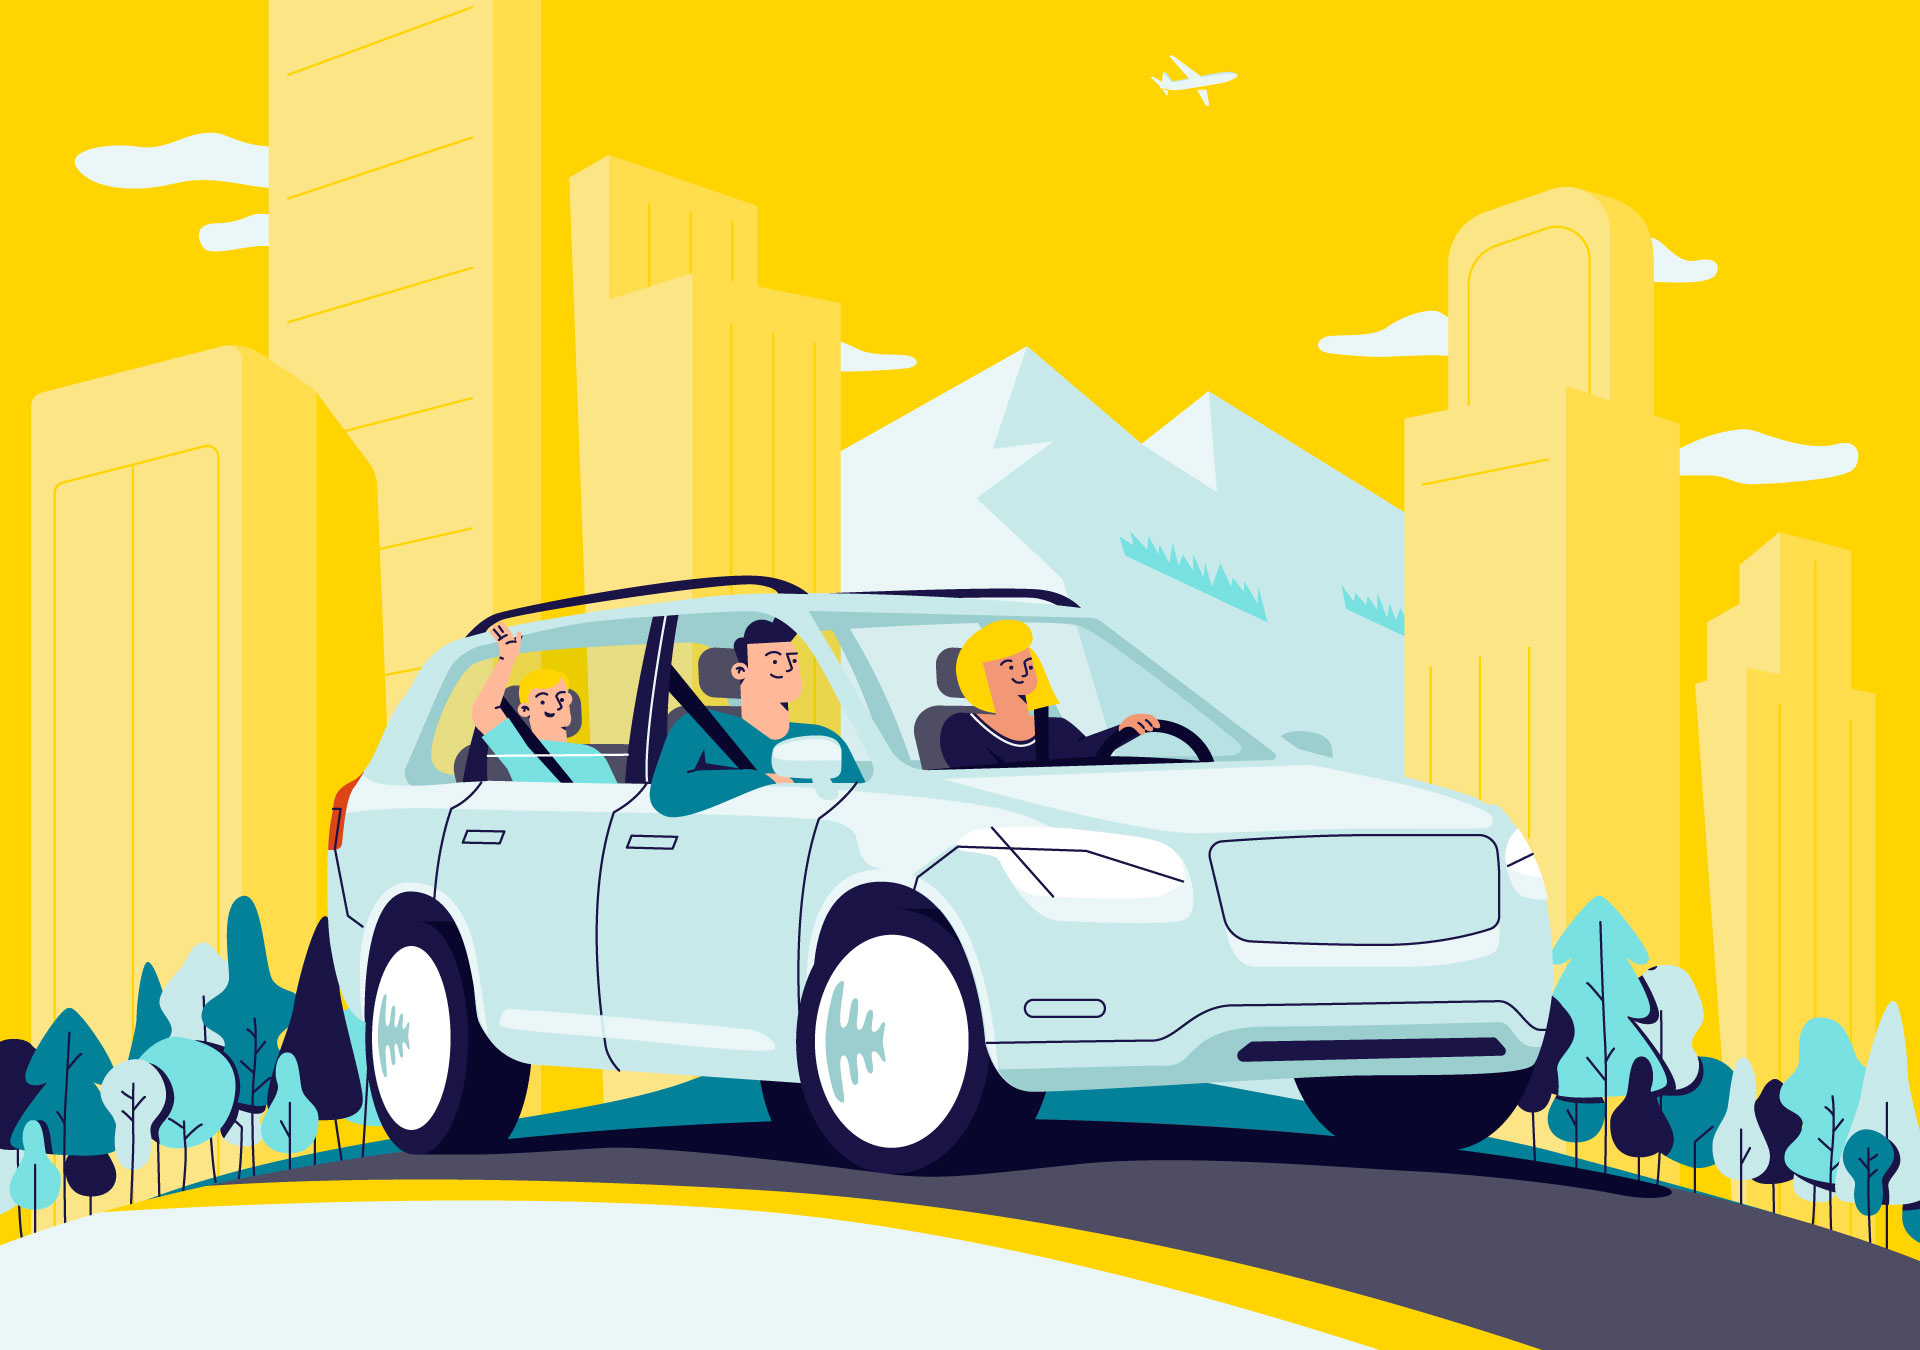 Illustration of a happy family in a car crossing the a city with trees, buildings and a big mountain in the background